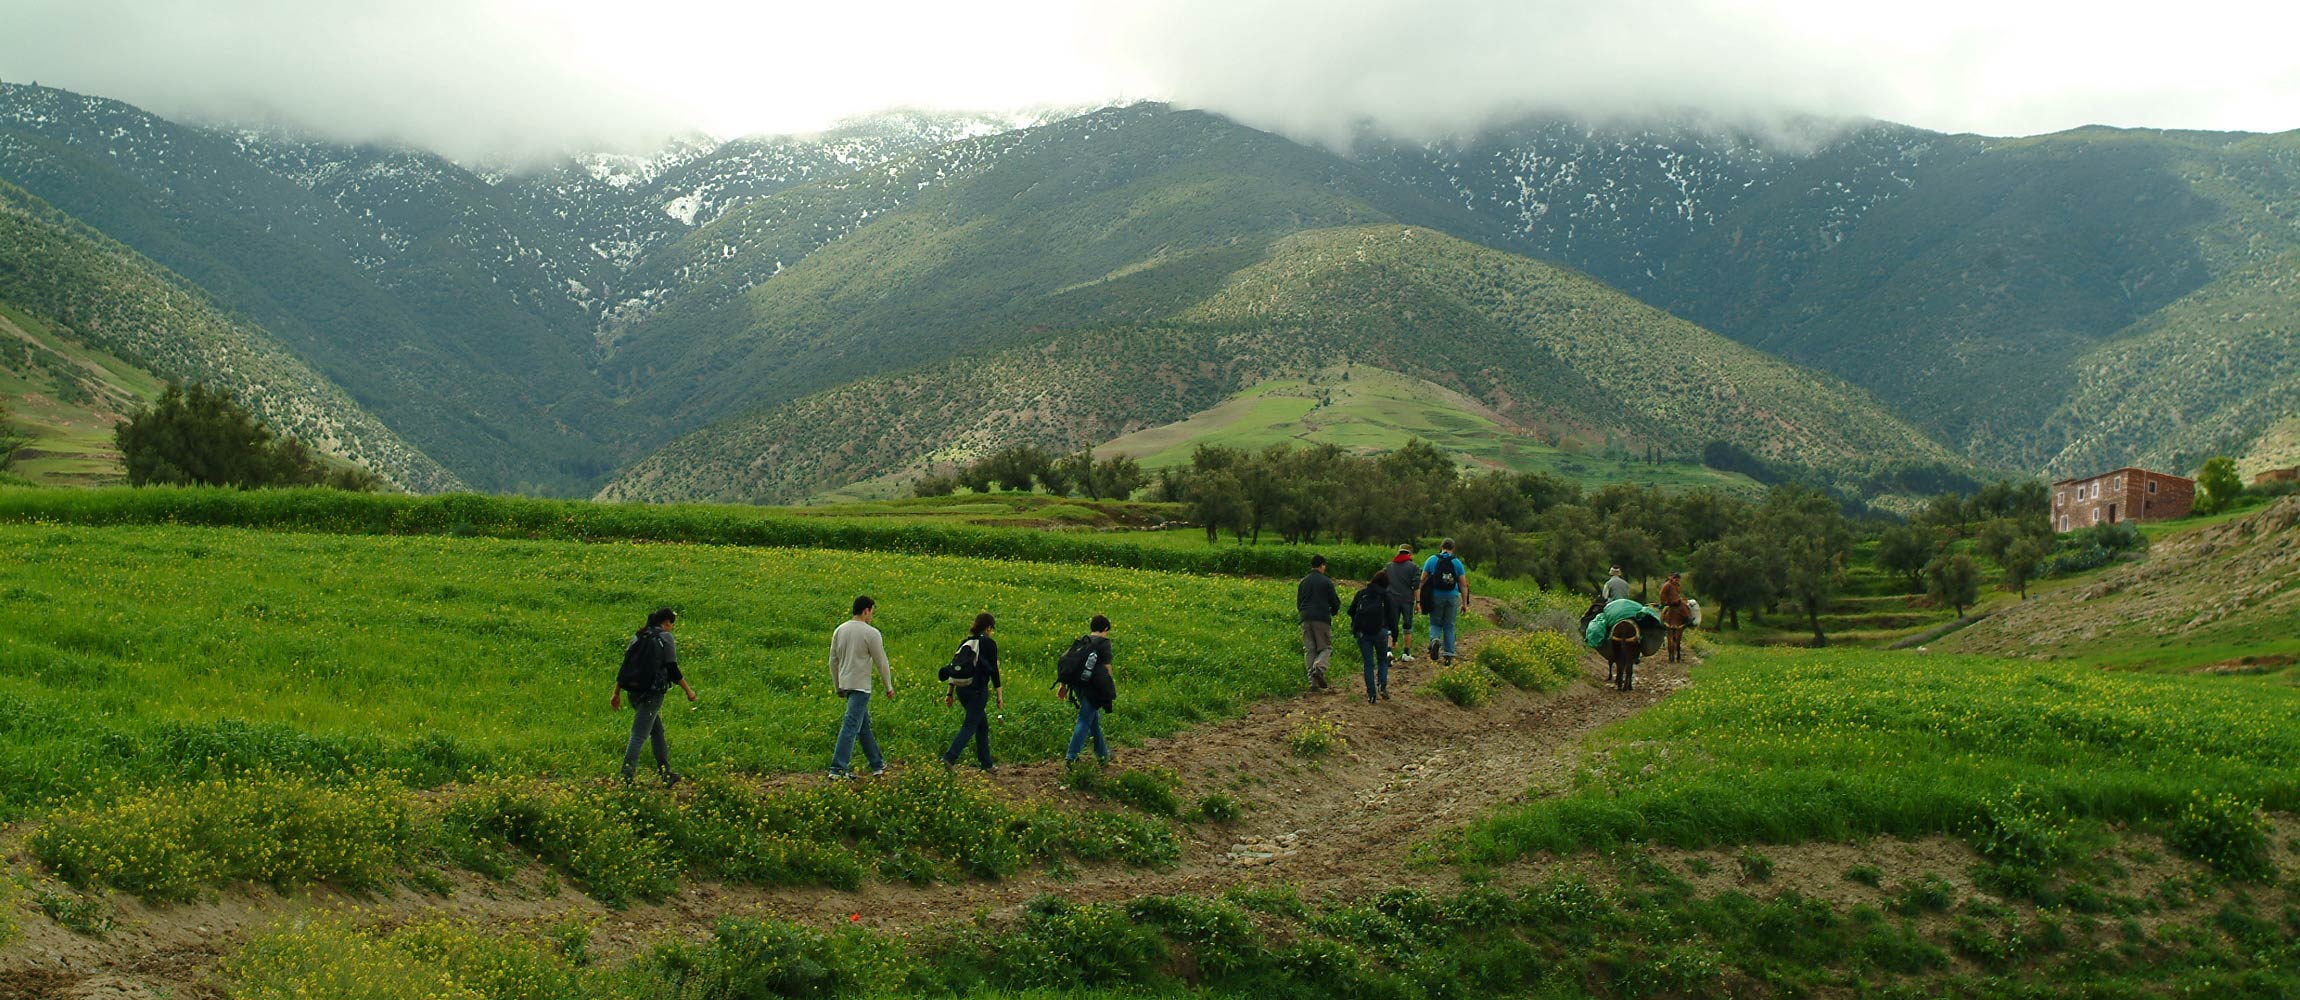 Hiking in the High Atlas Mountains near Marrakech, Morocco